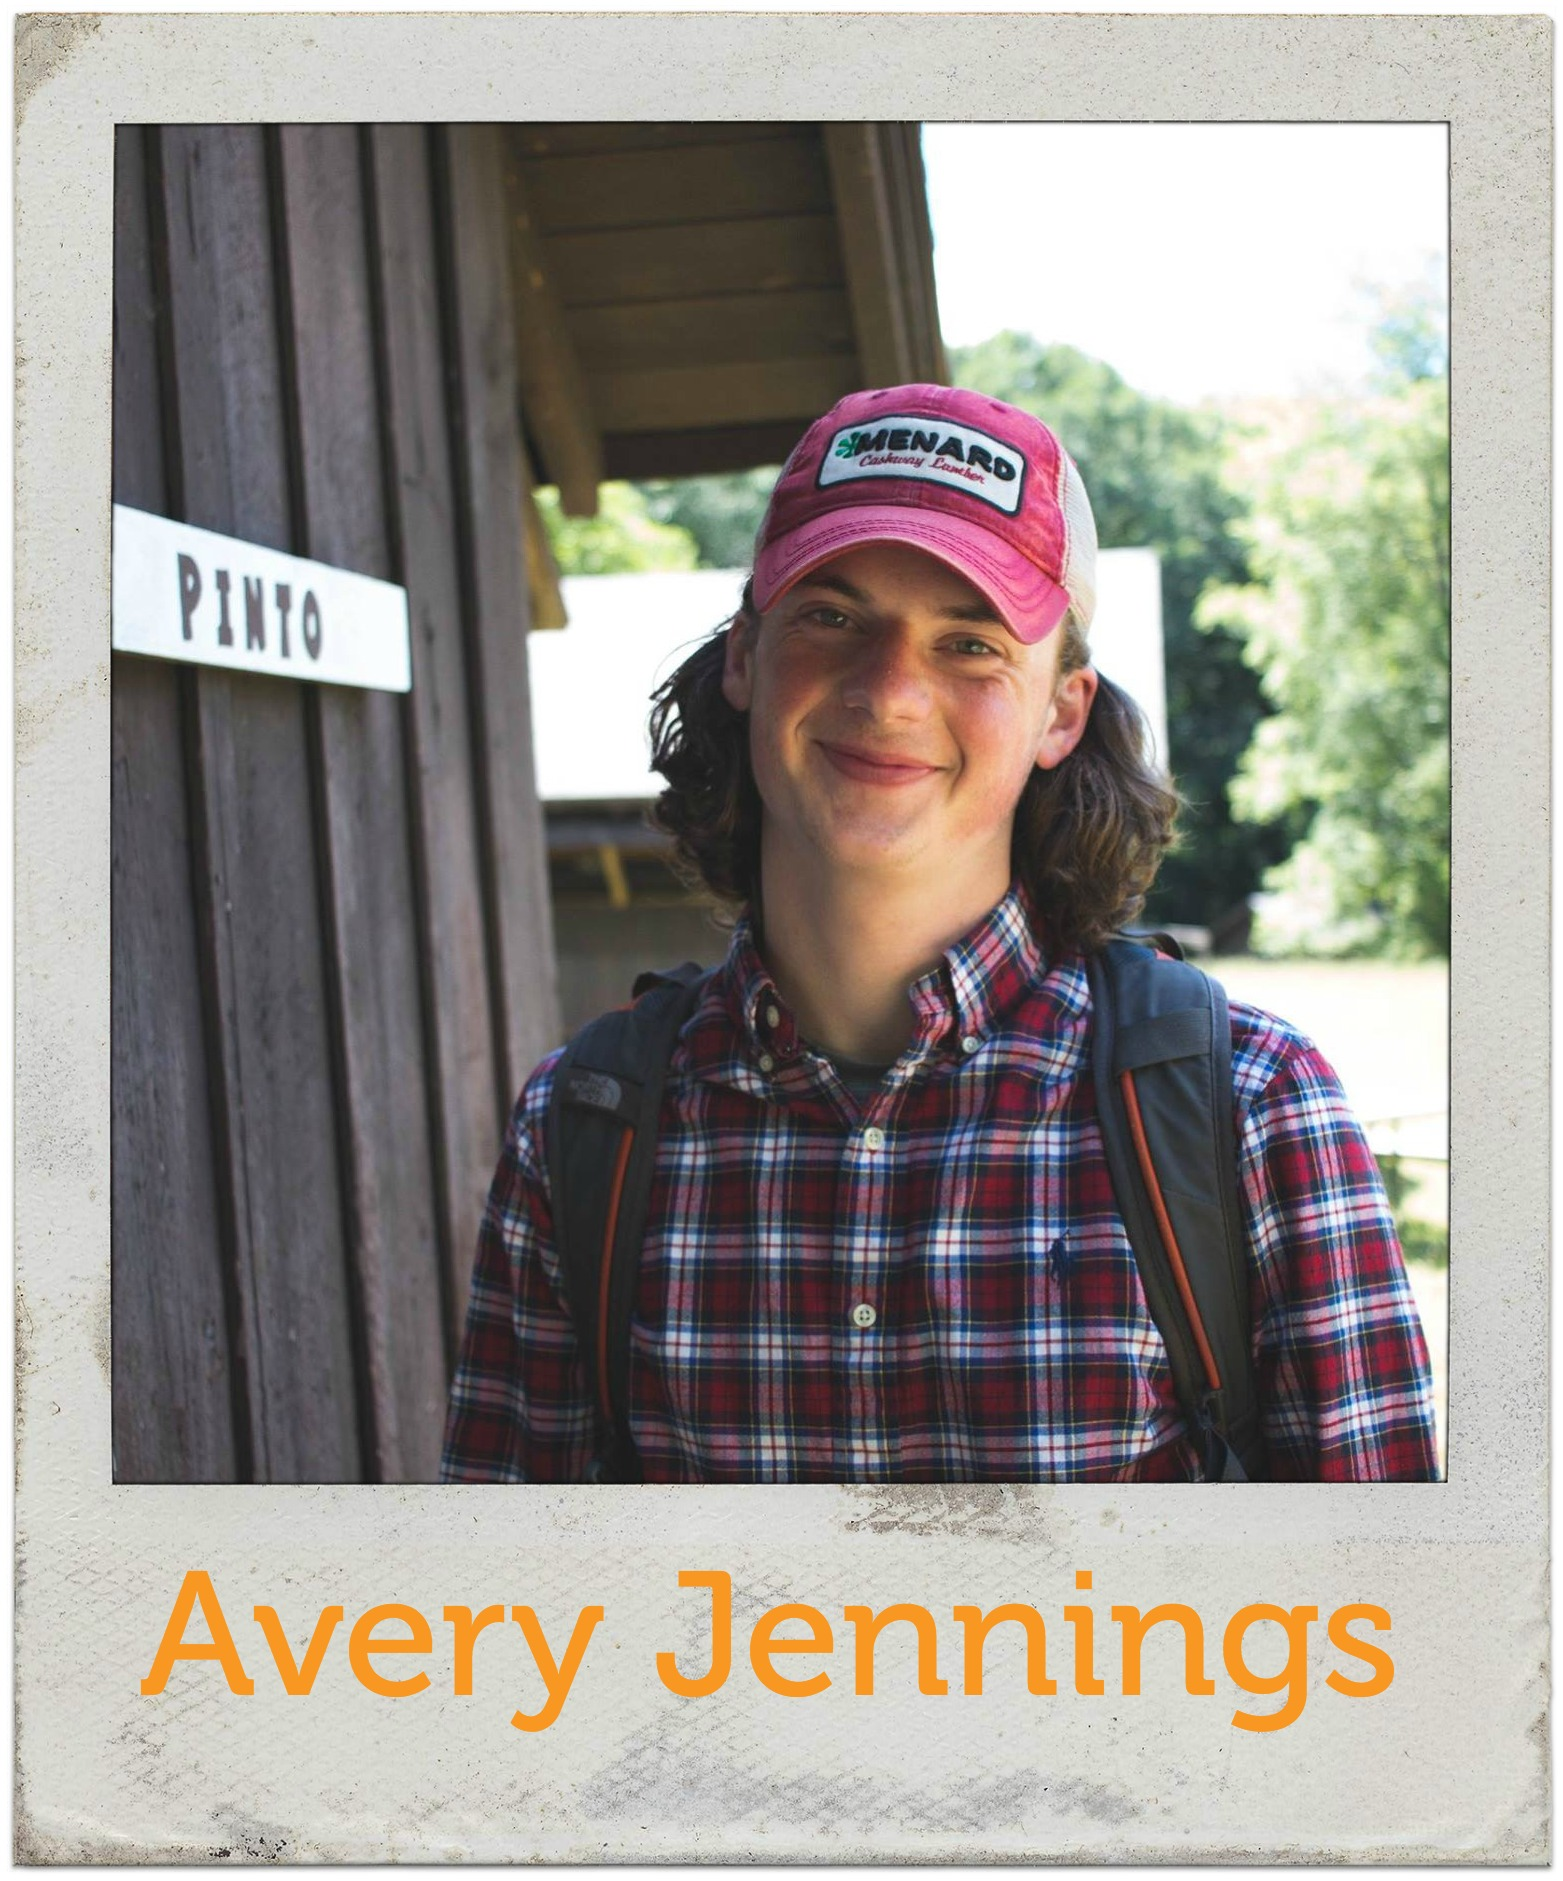 Avery Jennings3